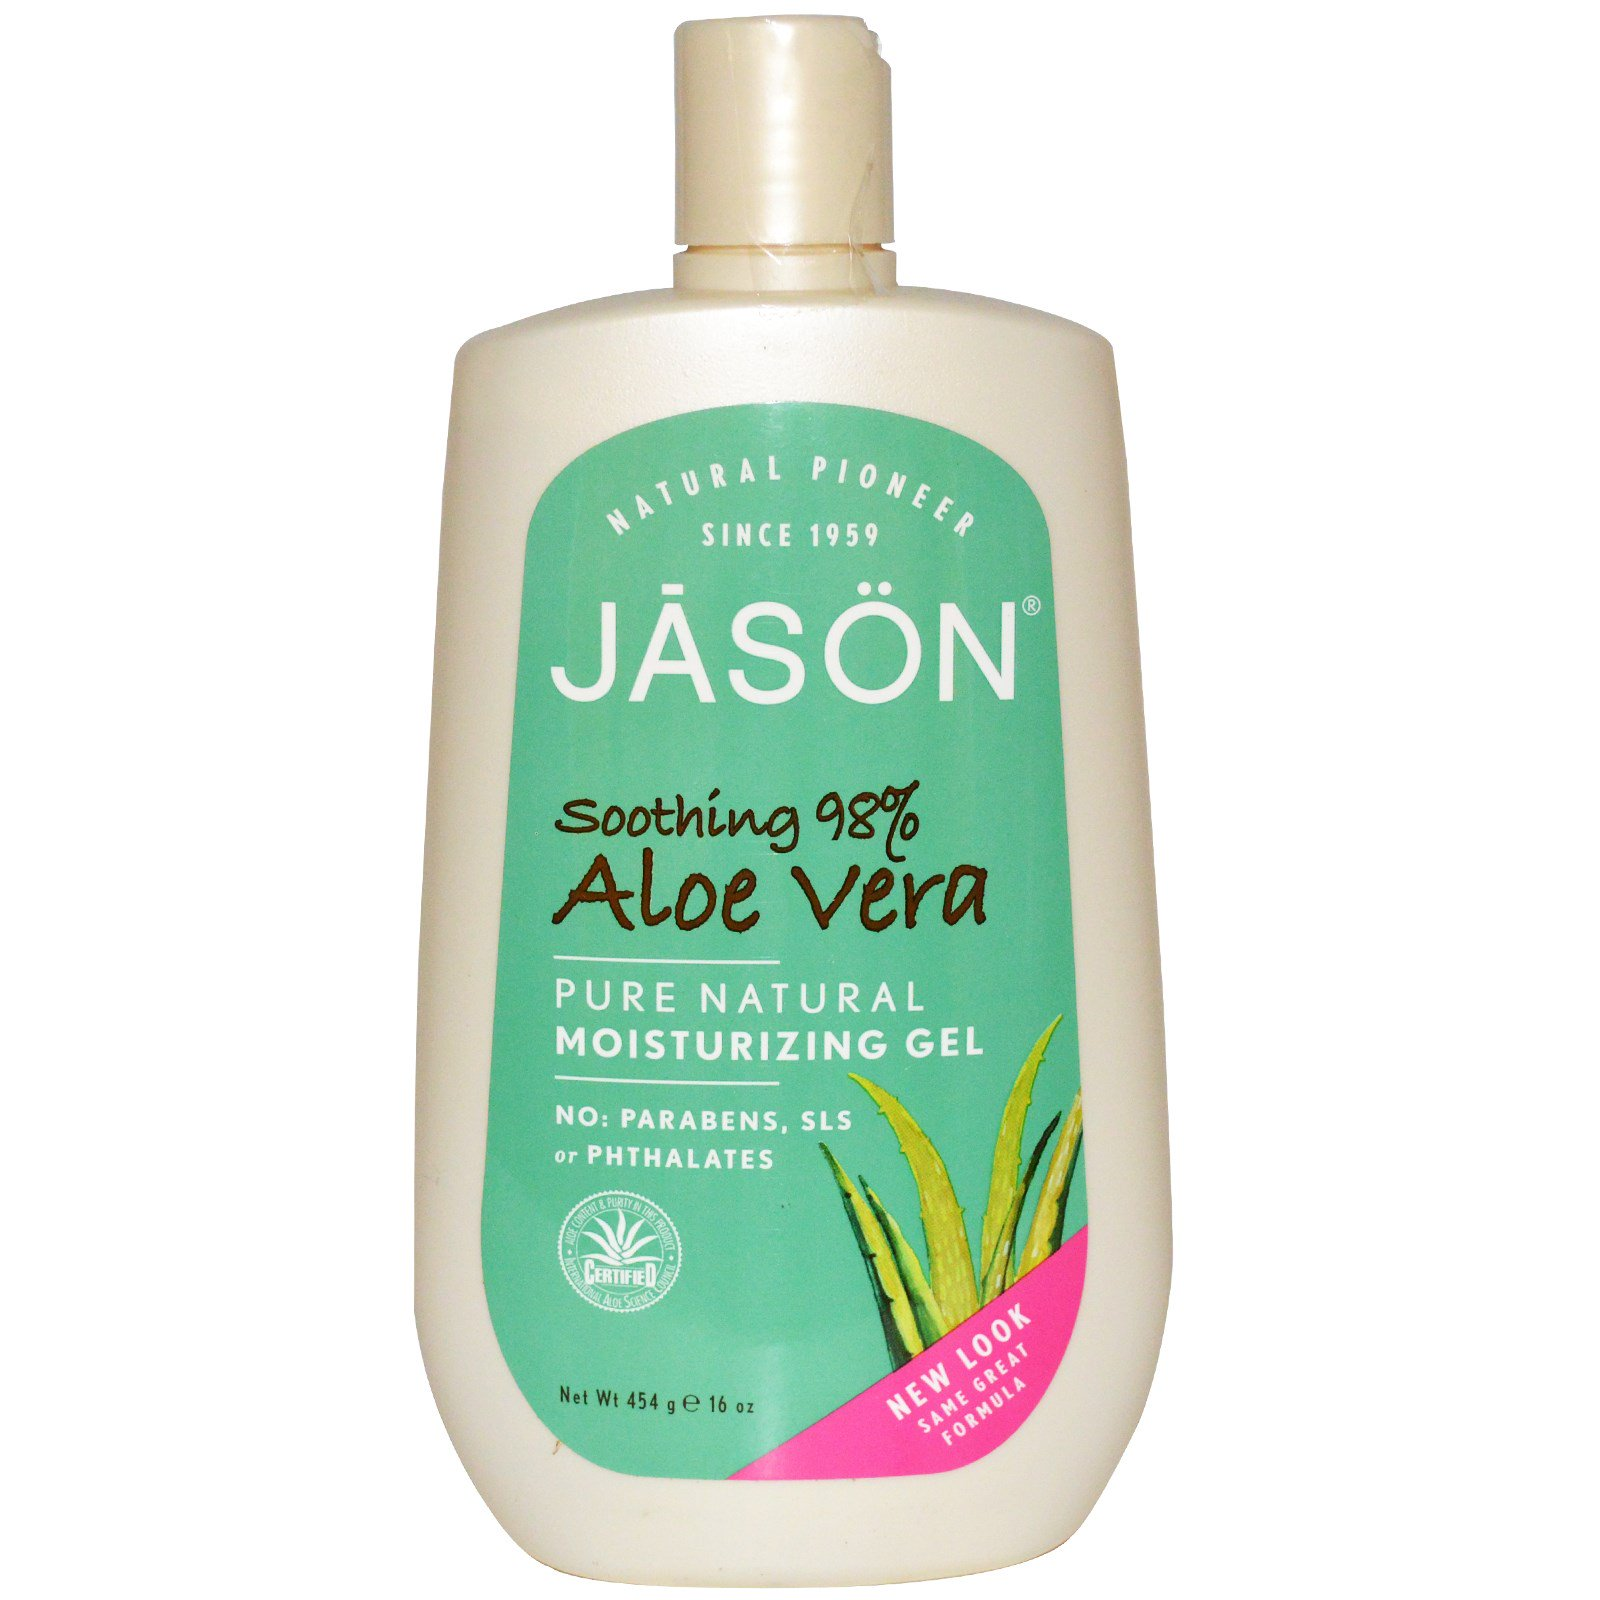 jason natural moisturizing gel aloe vera 16 oz 454 g. Black Bedroom Furniture Sets. Home Design Ideas